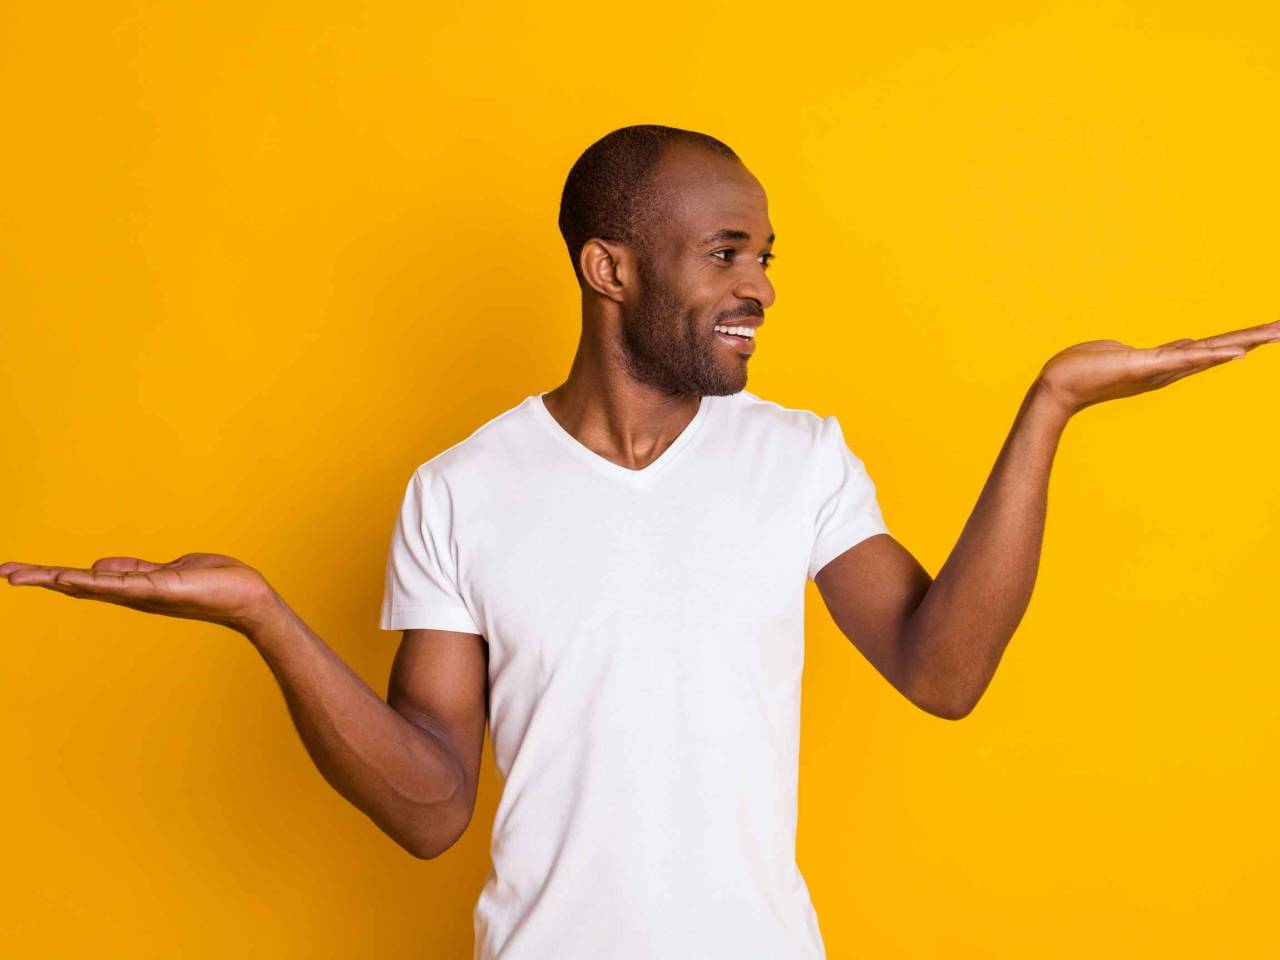 Portrait of positive afro american guy hold hand demonstrate ads promo recommend suggest select wear casual style clothes isolated over bright color background